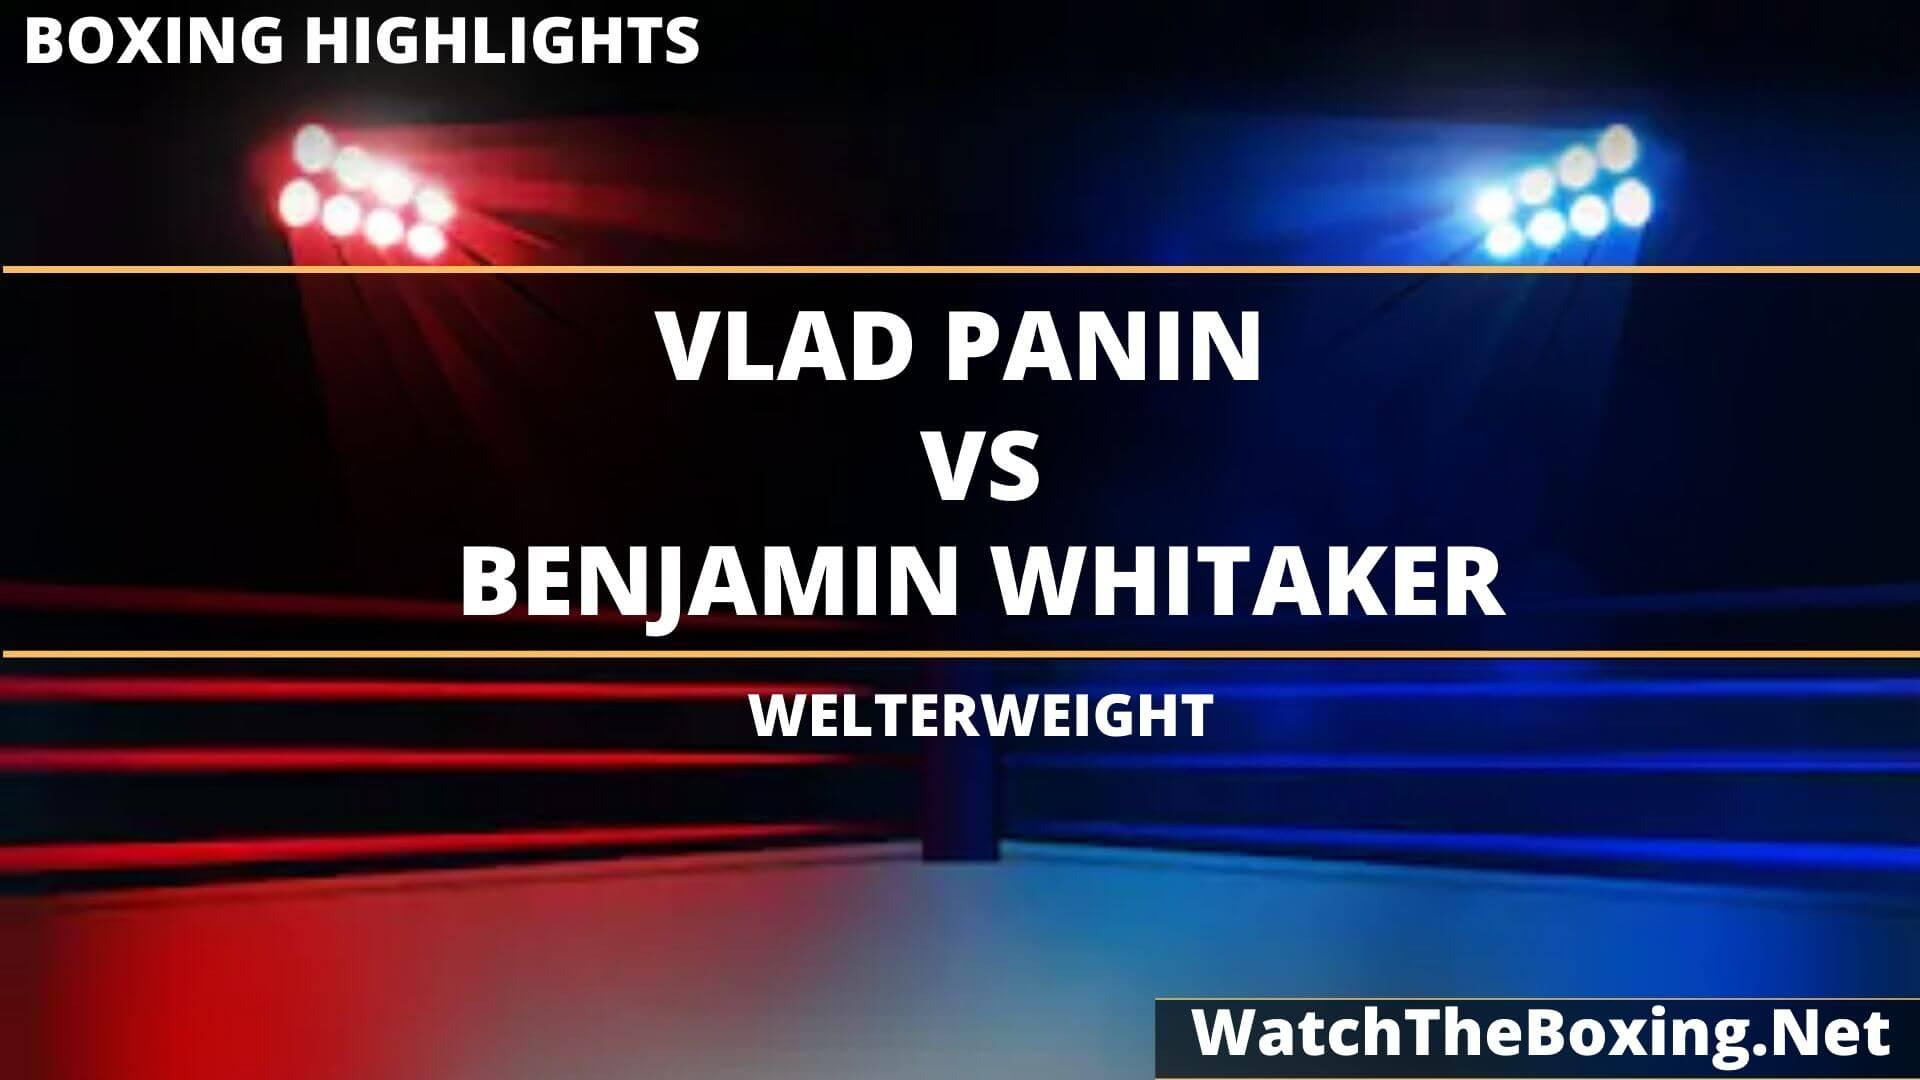 Vlad Panin Vs Benjamin Whitaker Highlights 2020 Welterweight